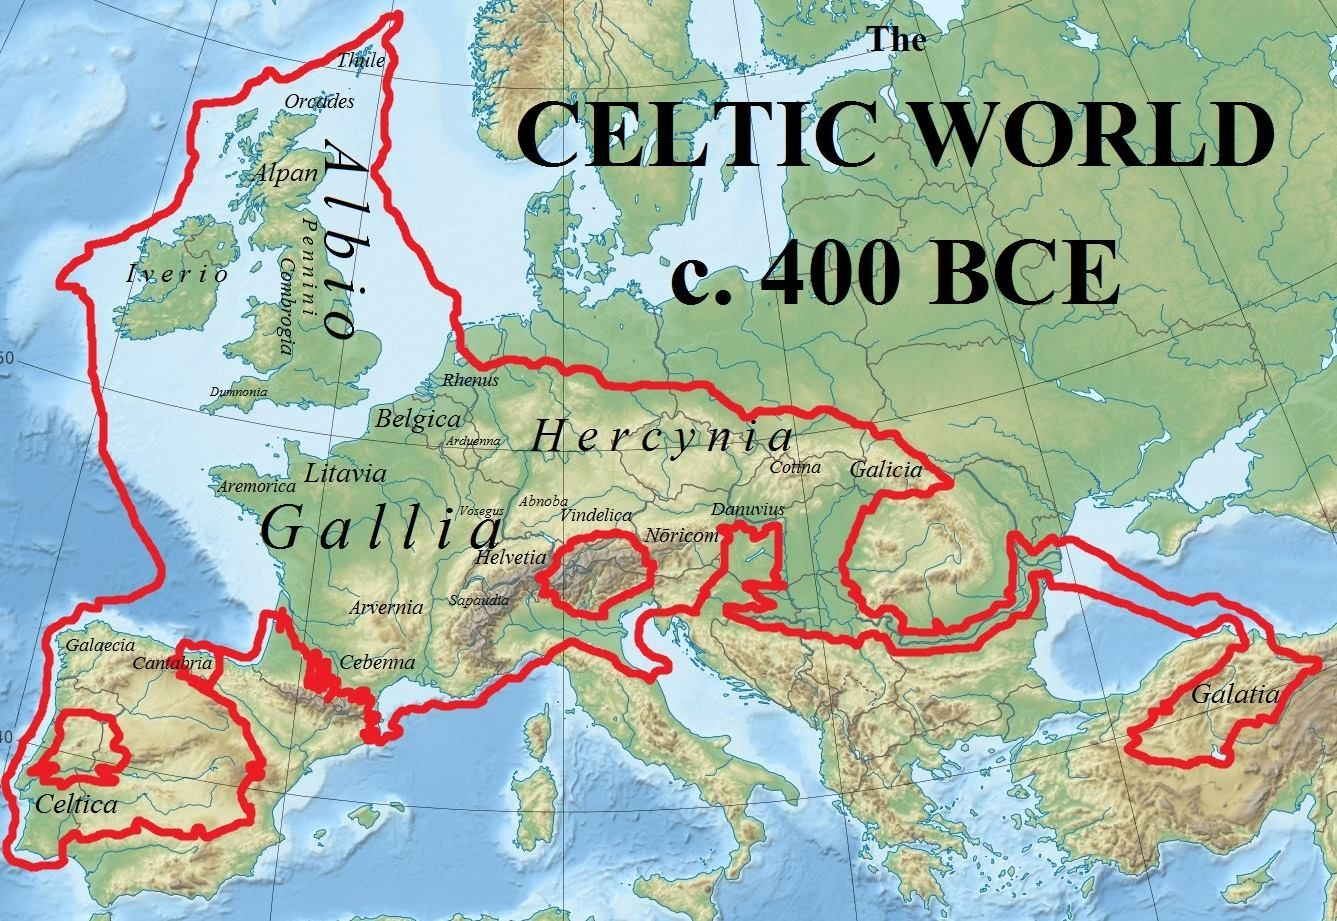 The Celtic world (ca. 400 BCE)